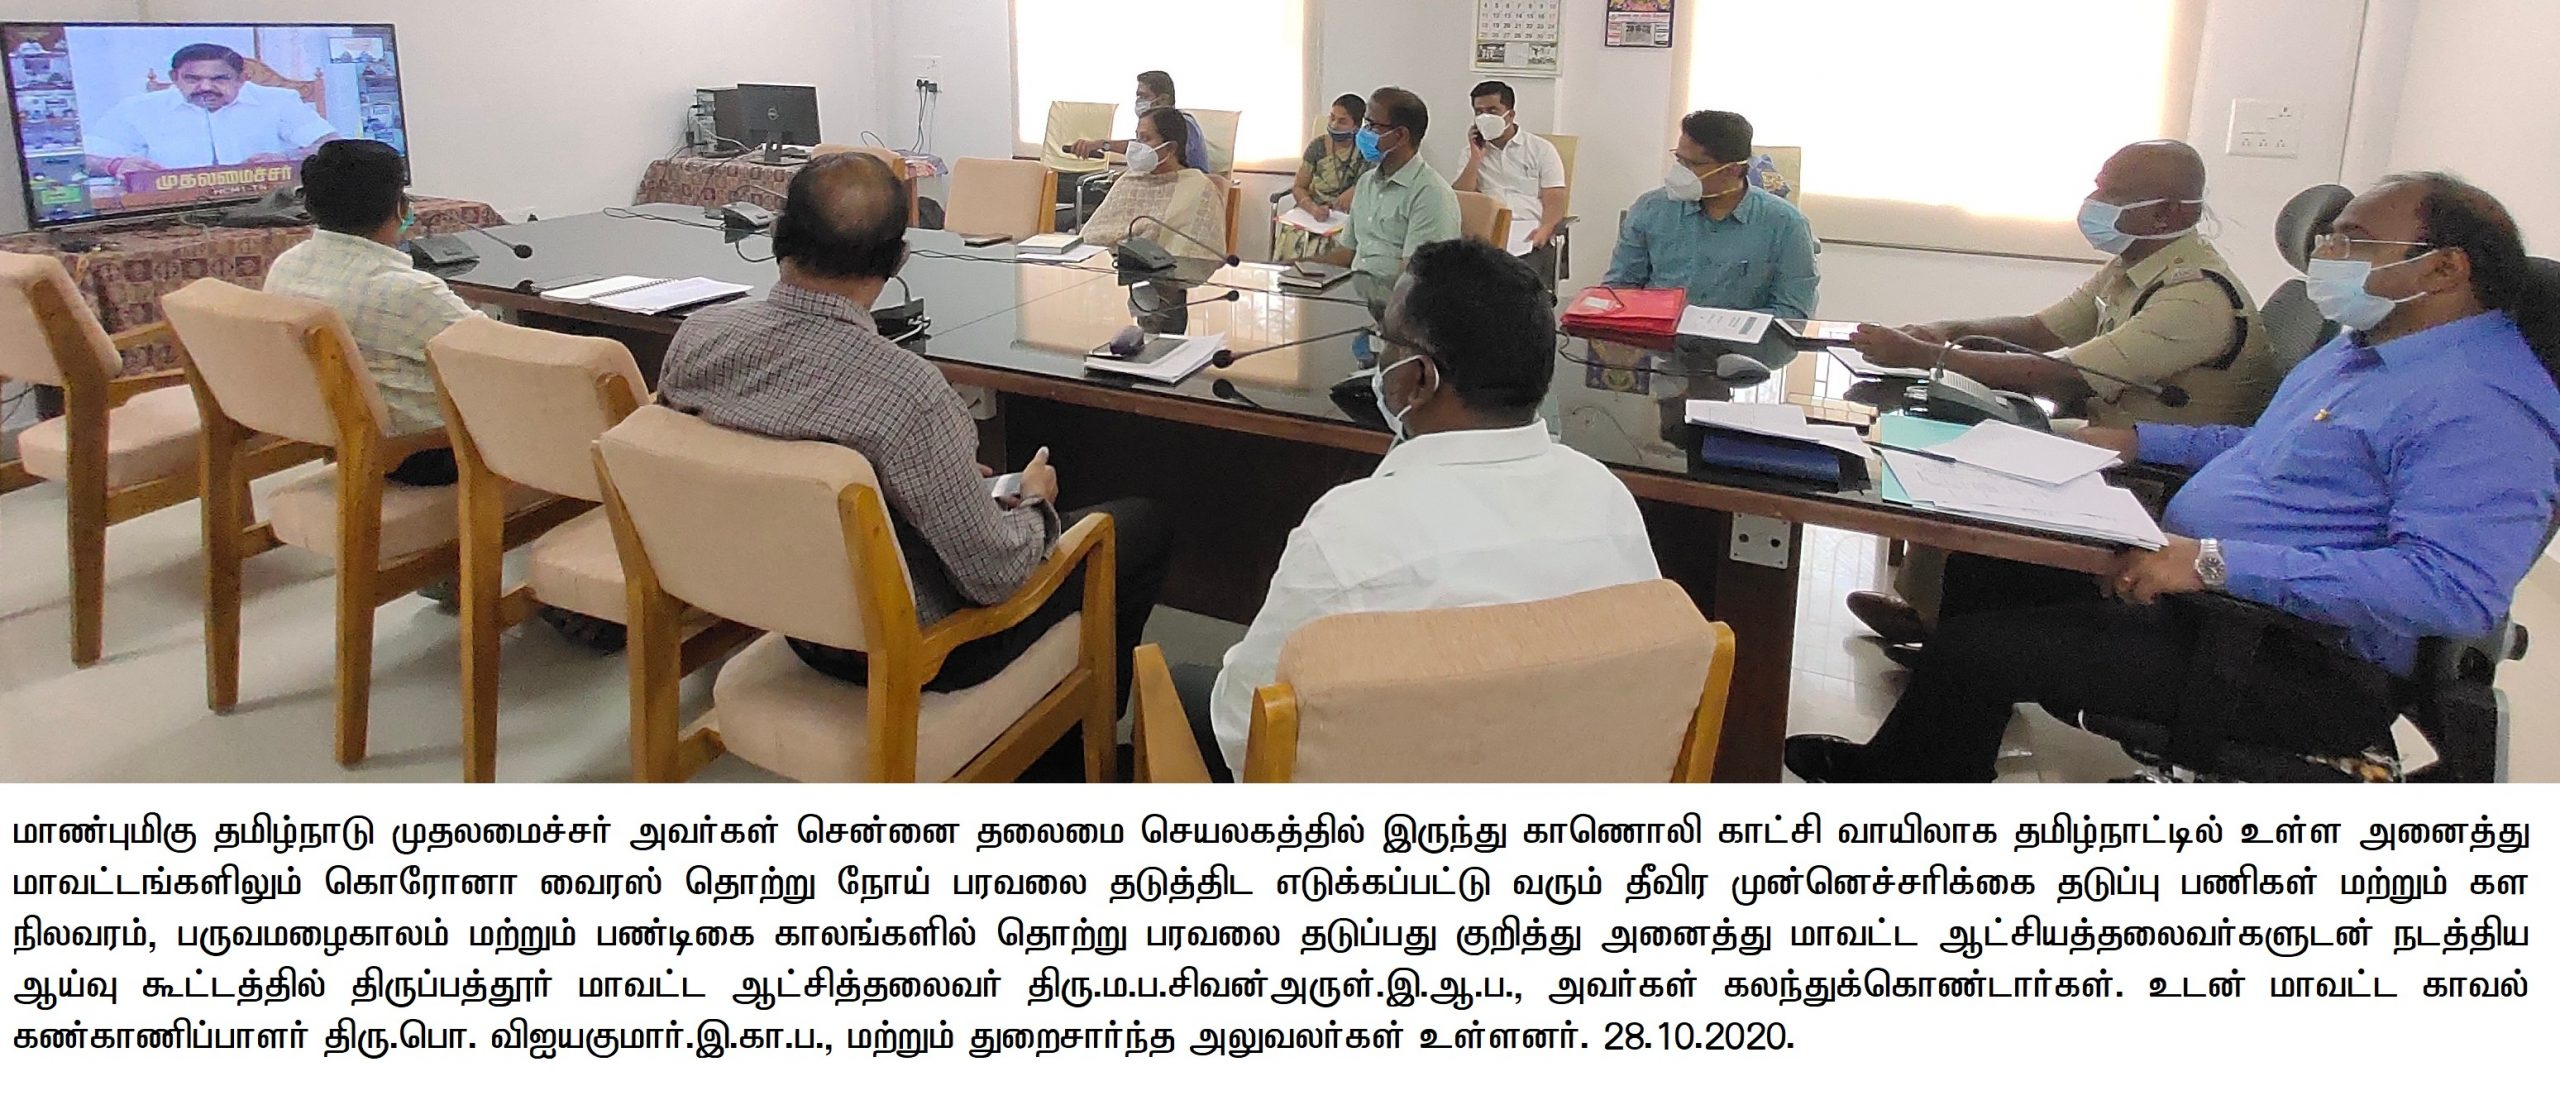 Corona Virus Preventive Methods Discussion through Video conference With Honorable Chief Minister Edapadi K.Palanisami 28-10-2020